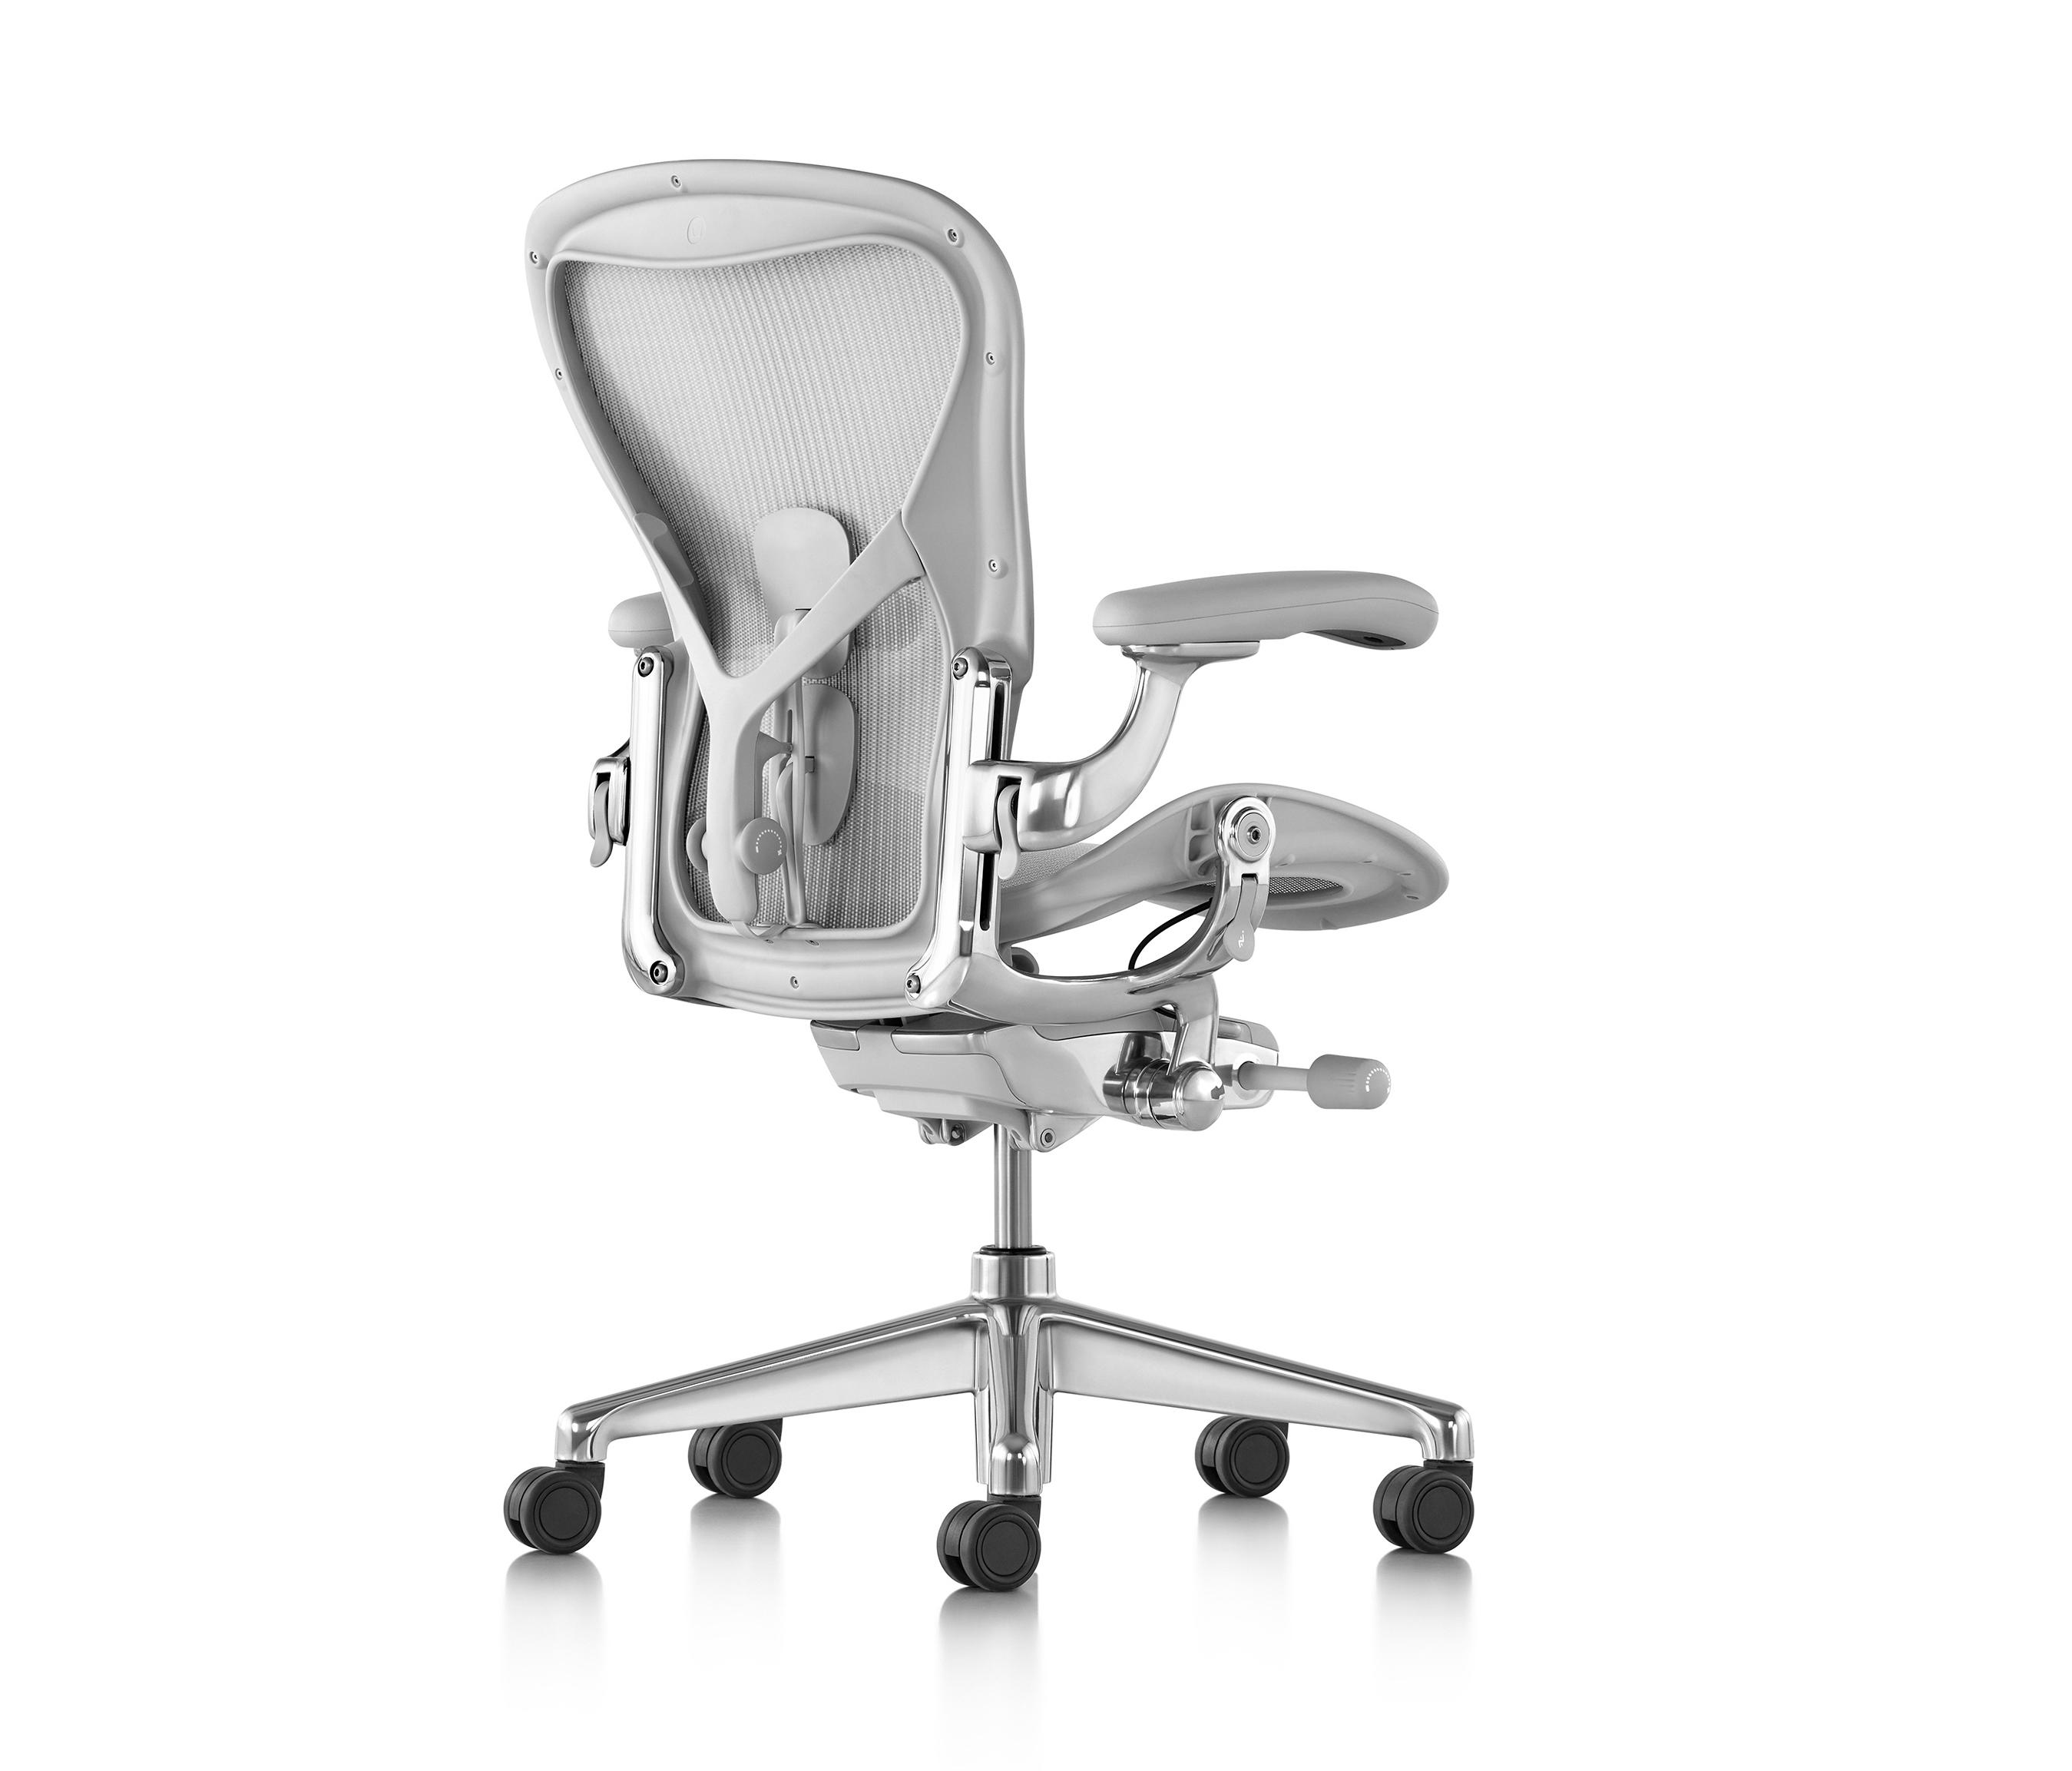 AERON CHAIR - Office chairs from Herman Miller  Architonic